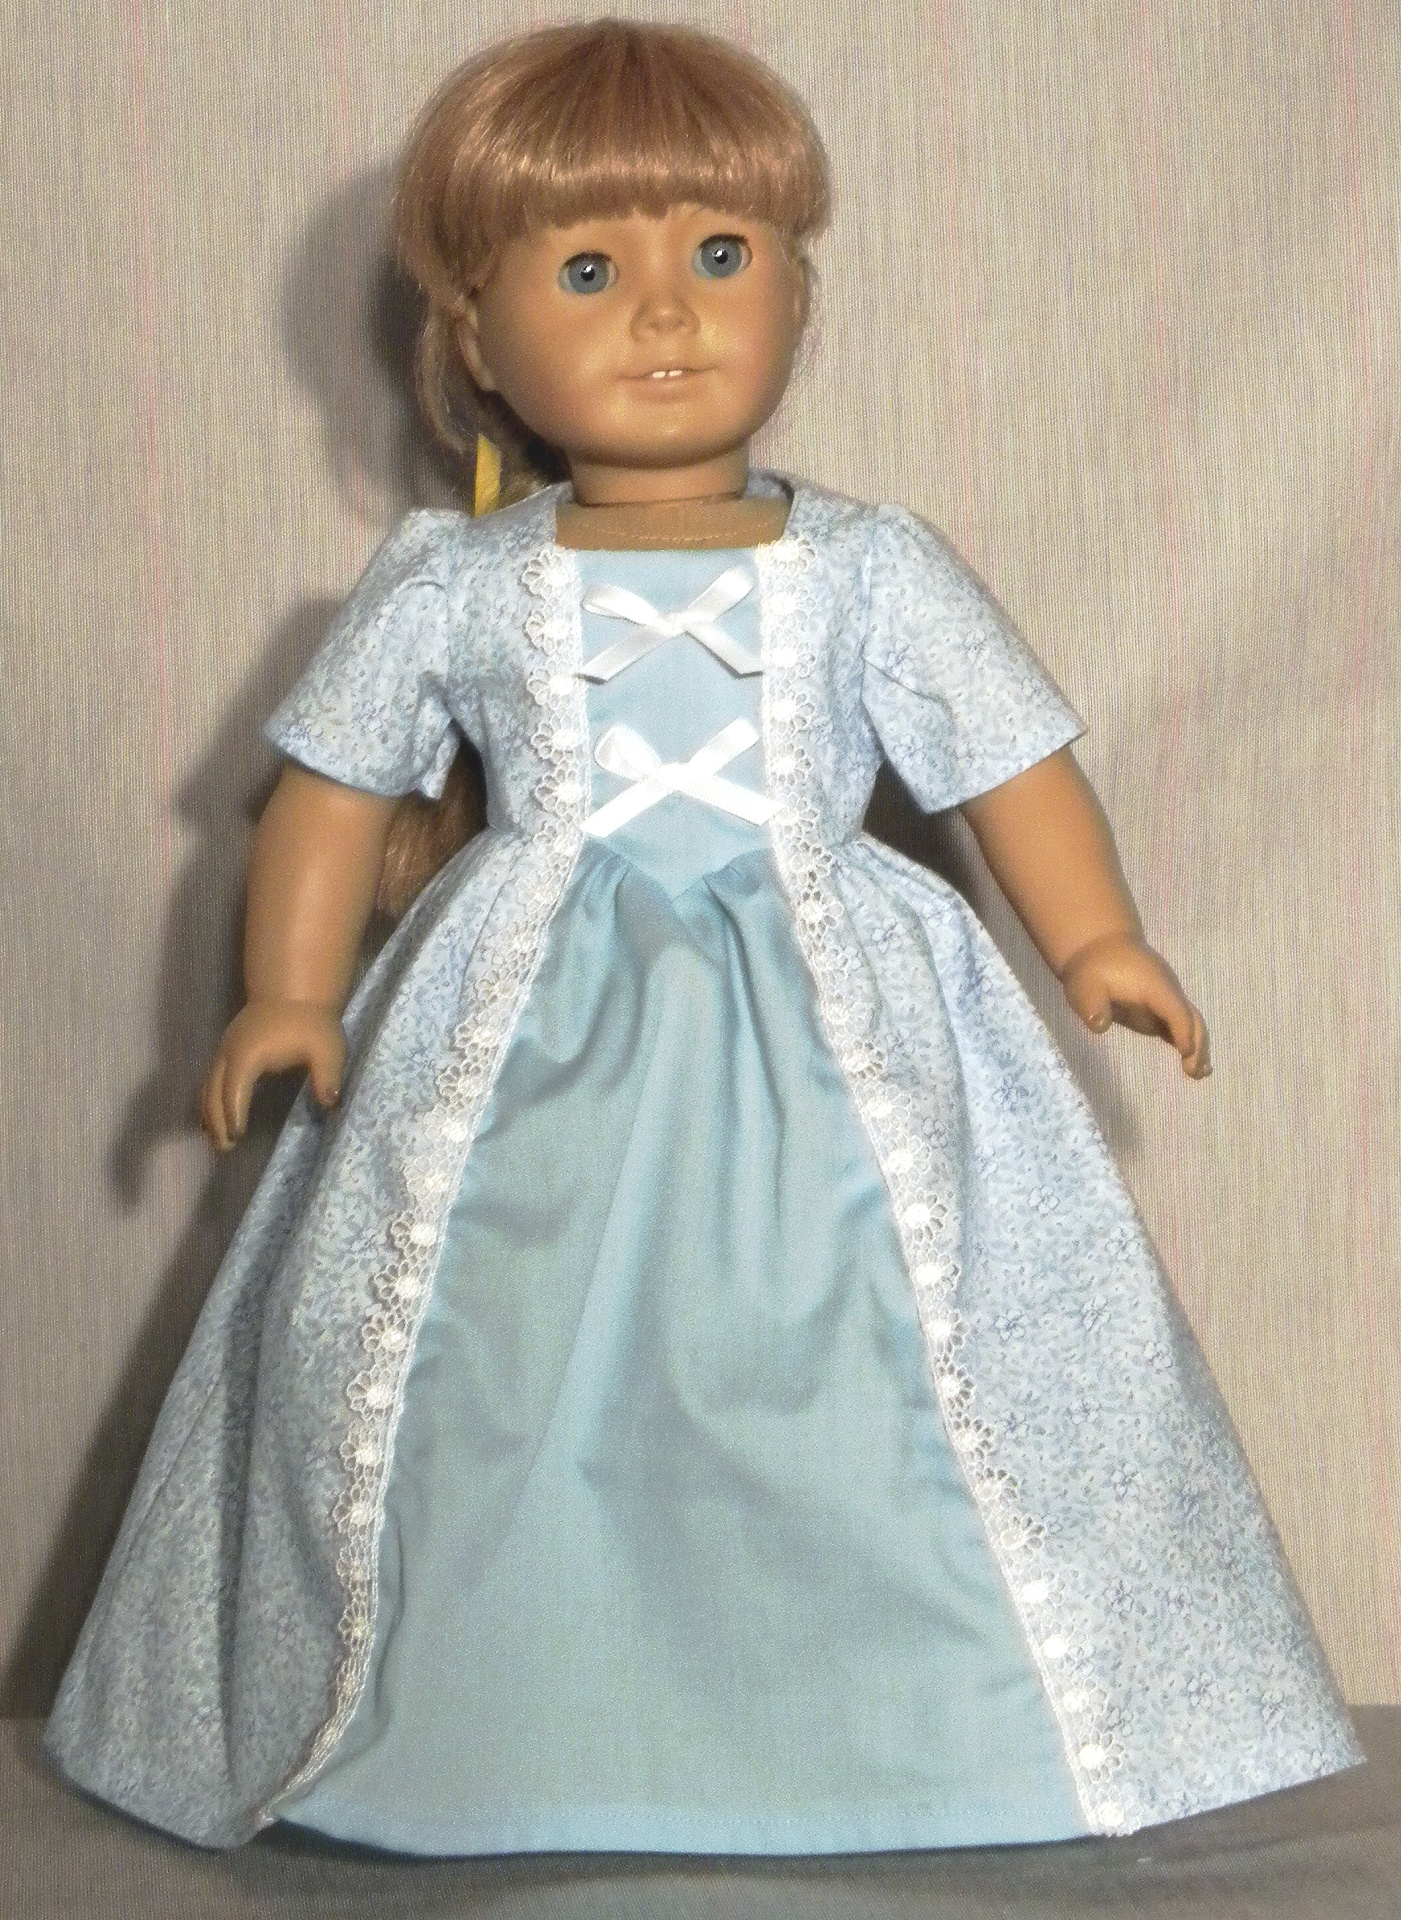 Dresses Dolly Duds